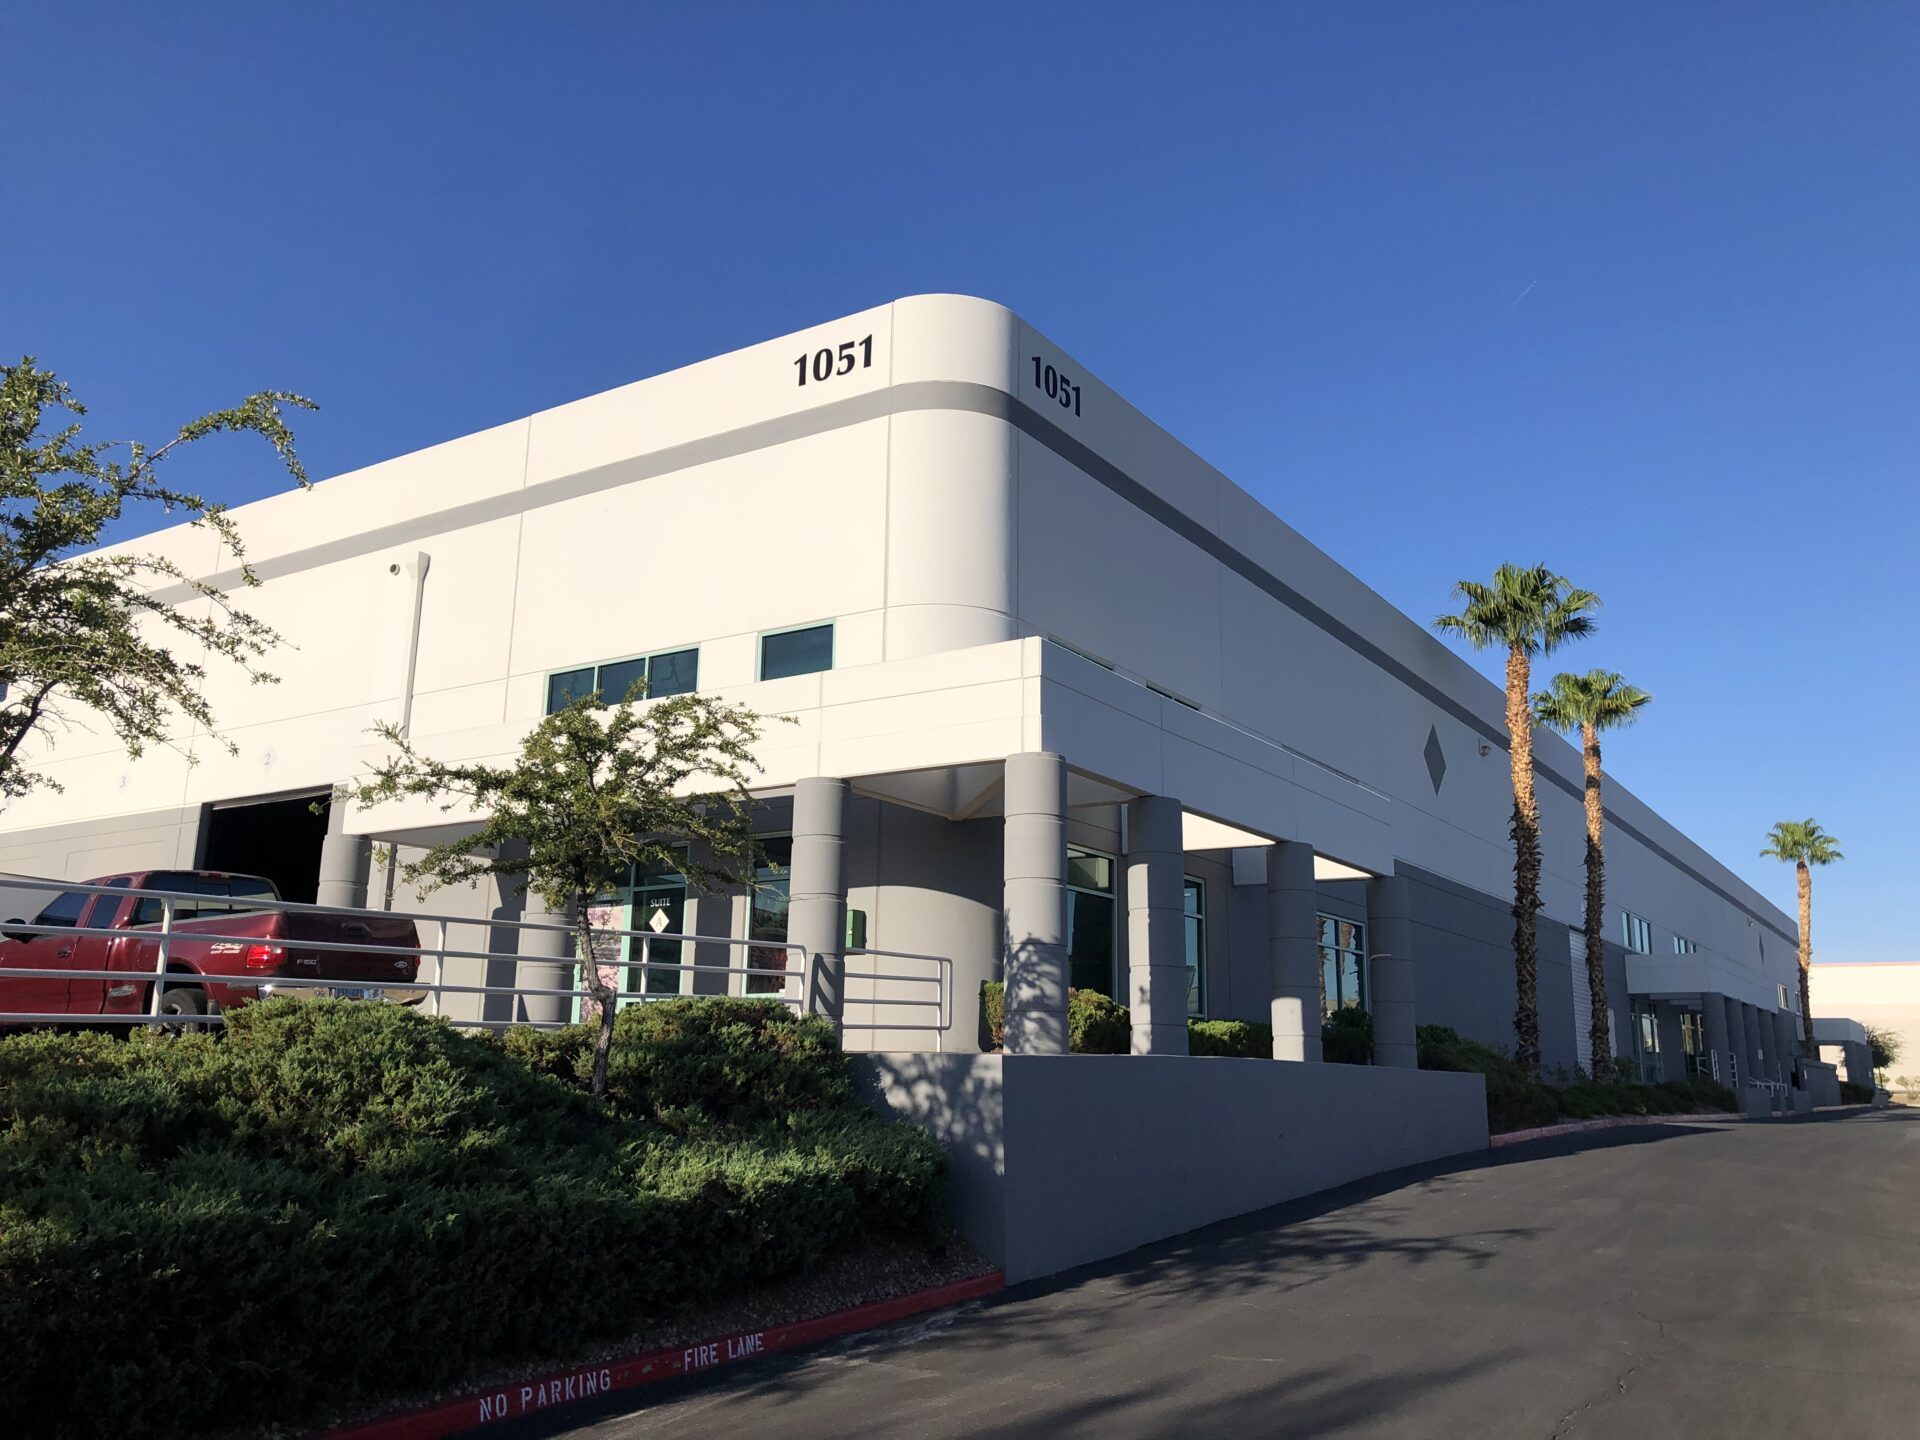 1051 MARY CREST RD. – HENDERSON DISTRIBUTION CENTER NORTH